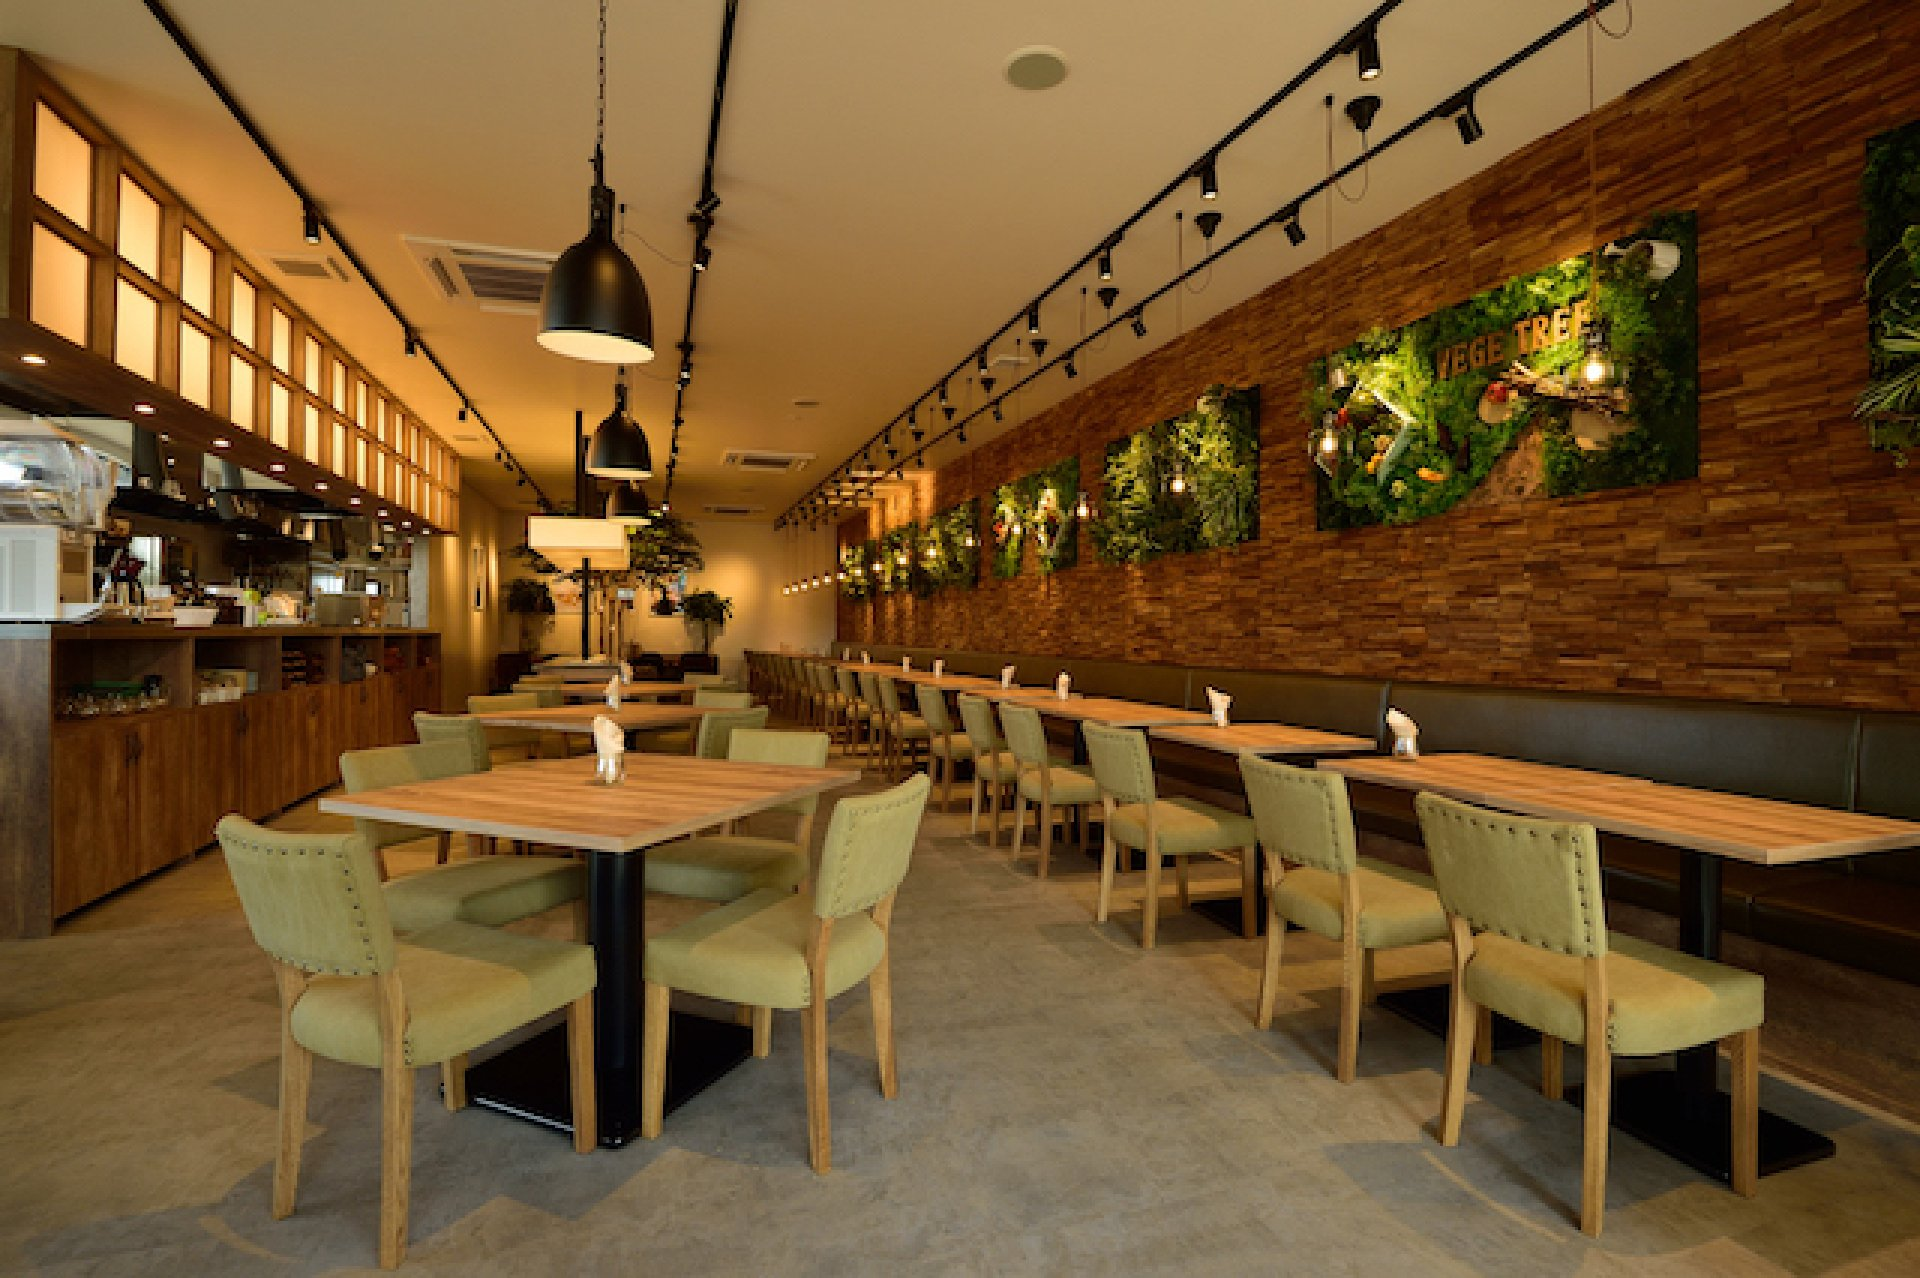 vege tree cafe0008.JPG